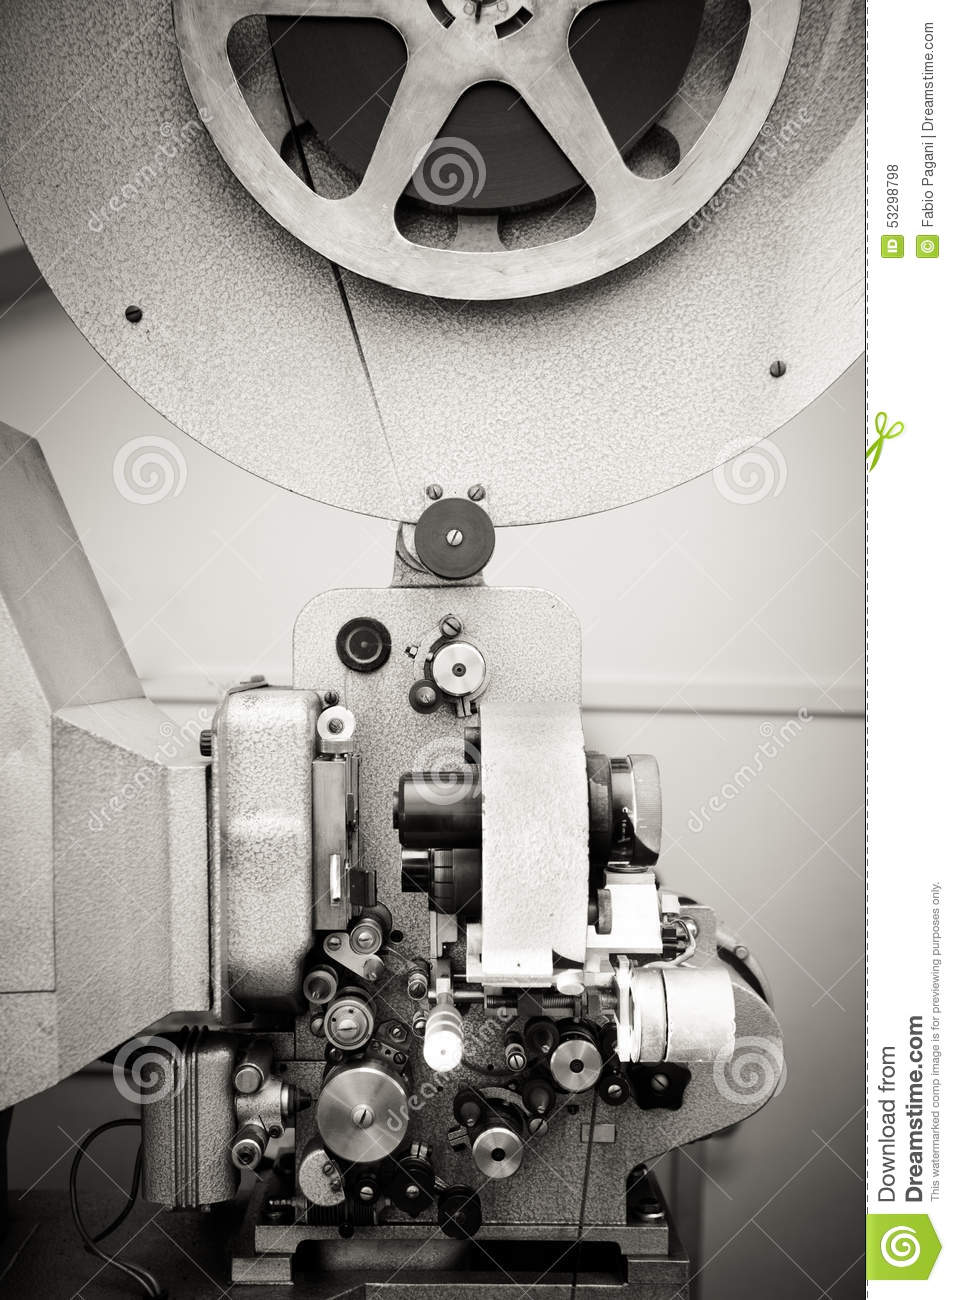 16mm Reel Movie Projectors: Cinema Projector For 16 Mm Movie, Old Vintage Stock Photo